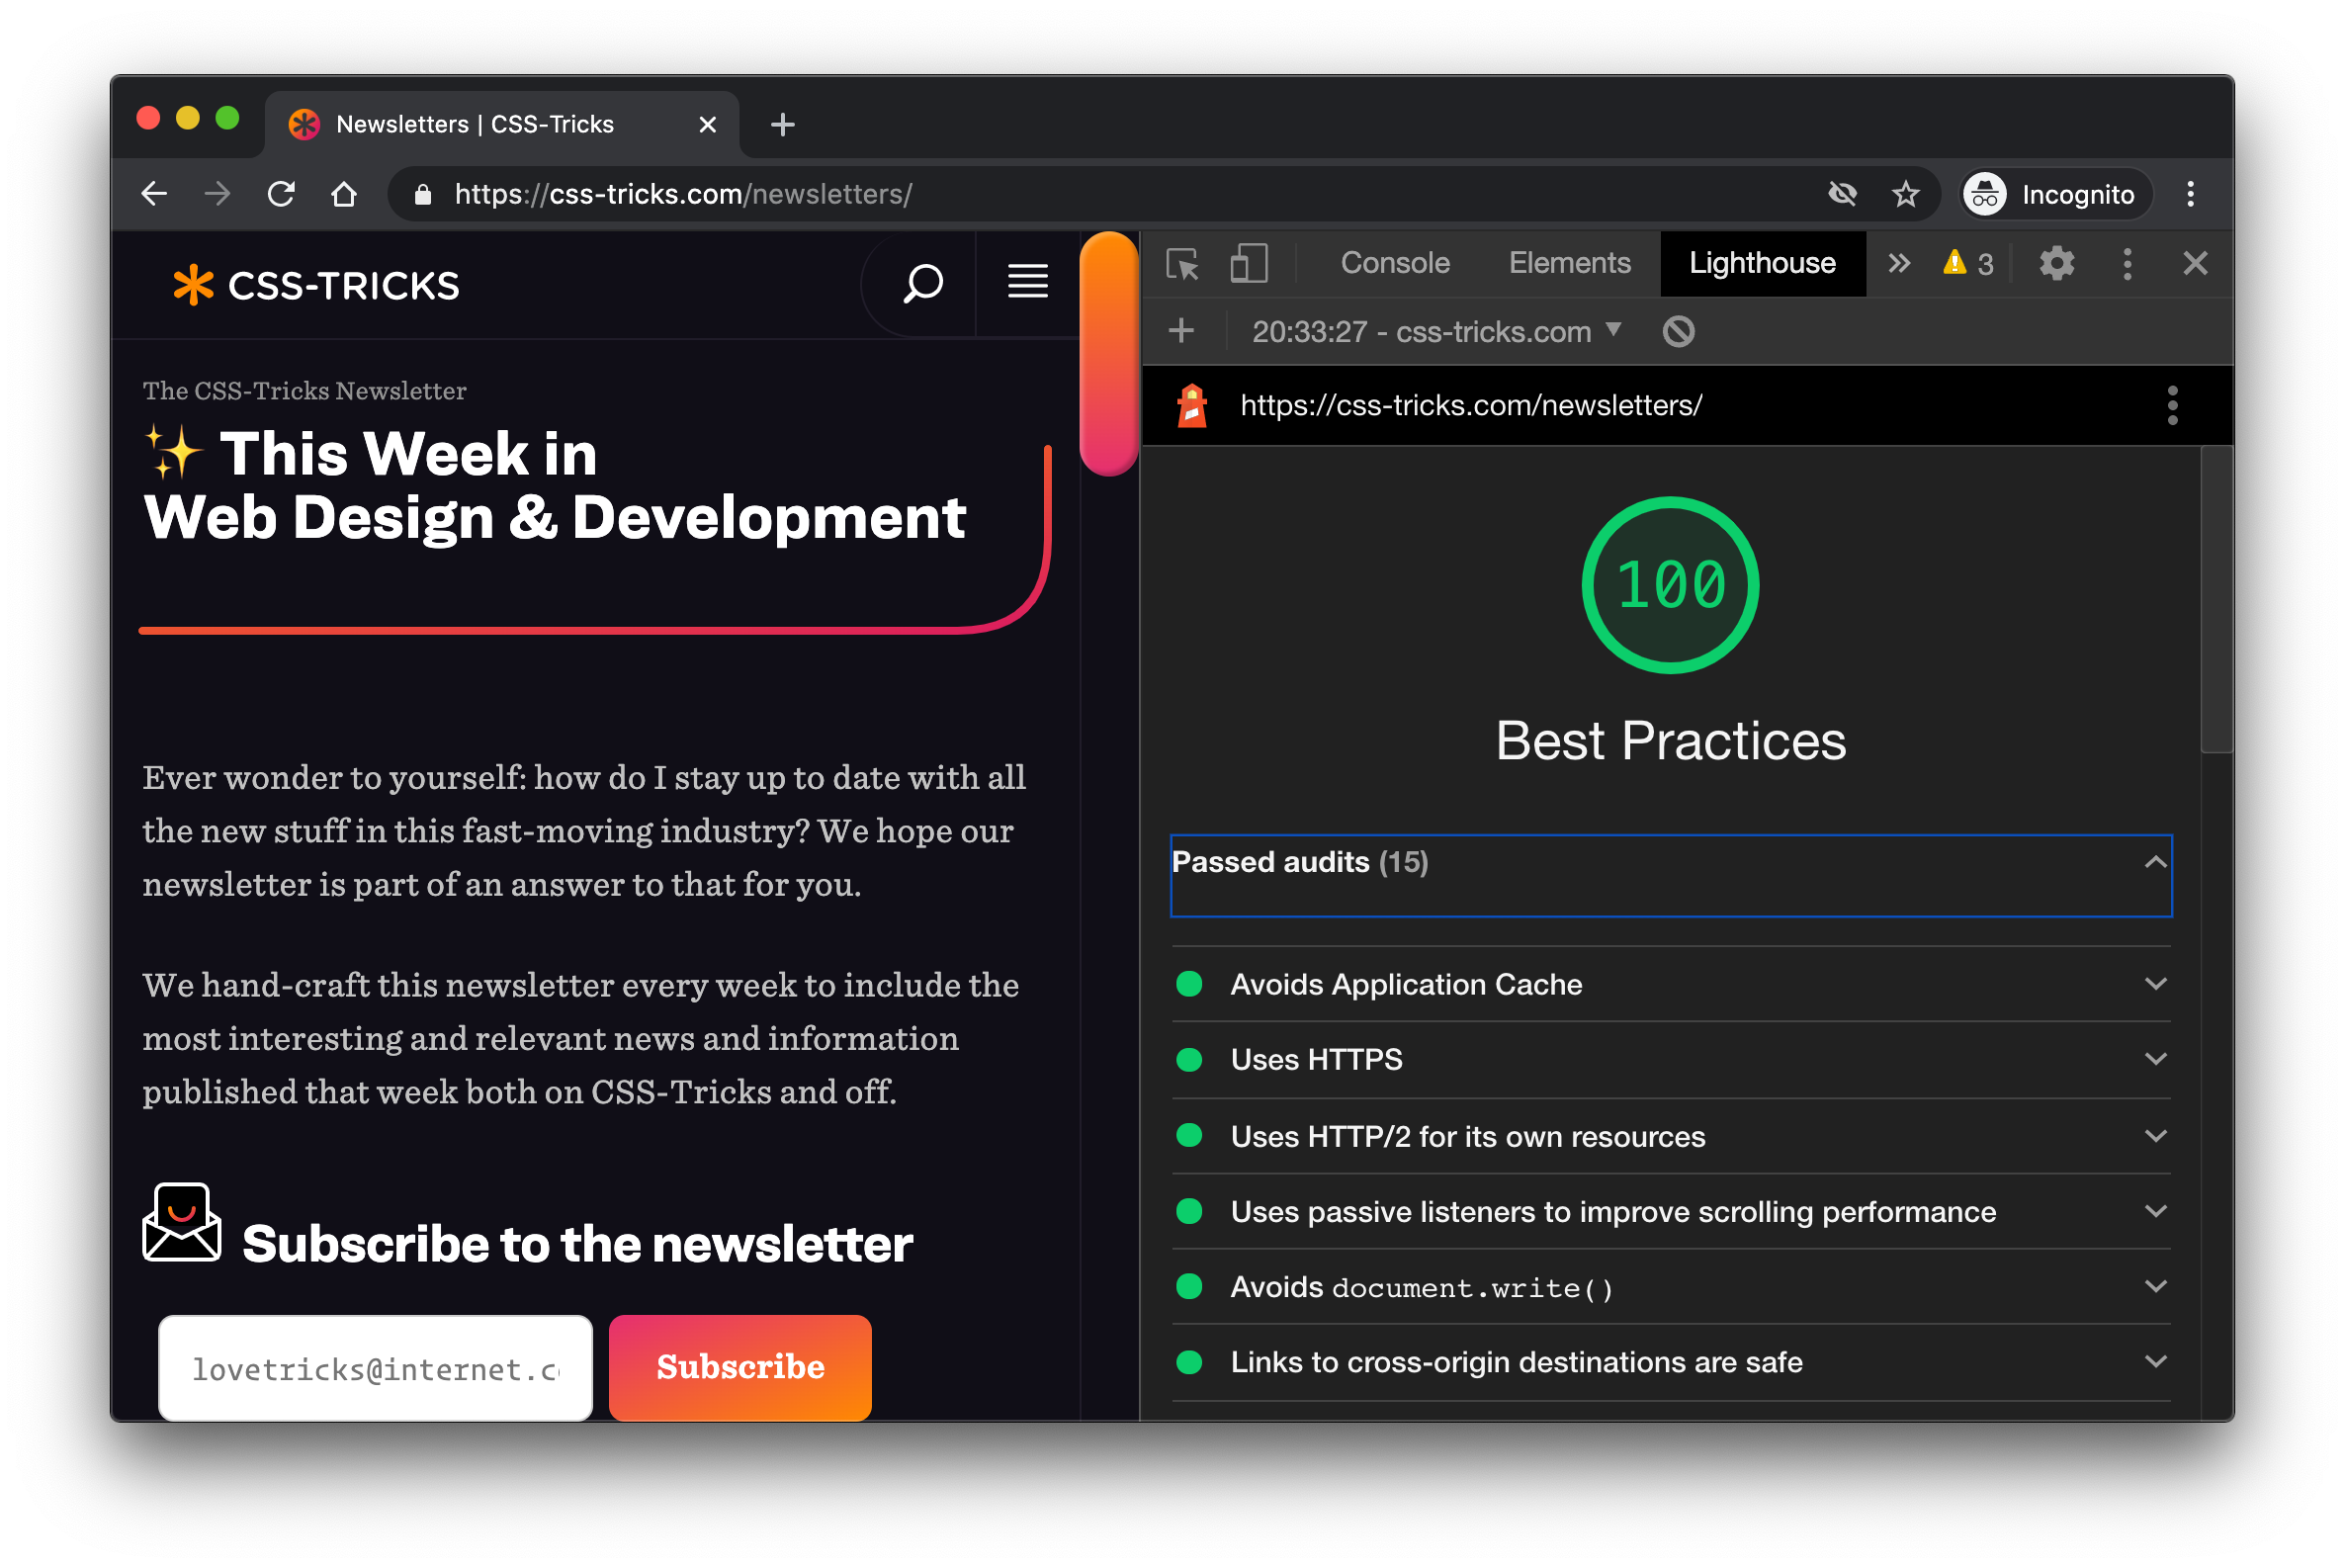 Screenshot of DevTools open on a CSS-Tricks page. The Lighthouse panel is open showing a best practices score of 100 out of 100.